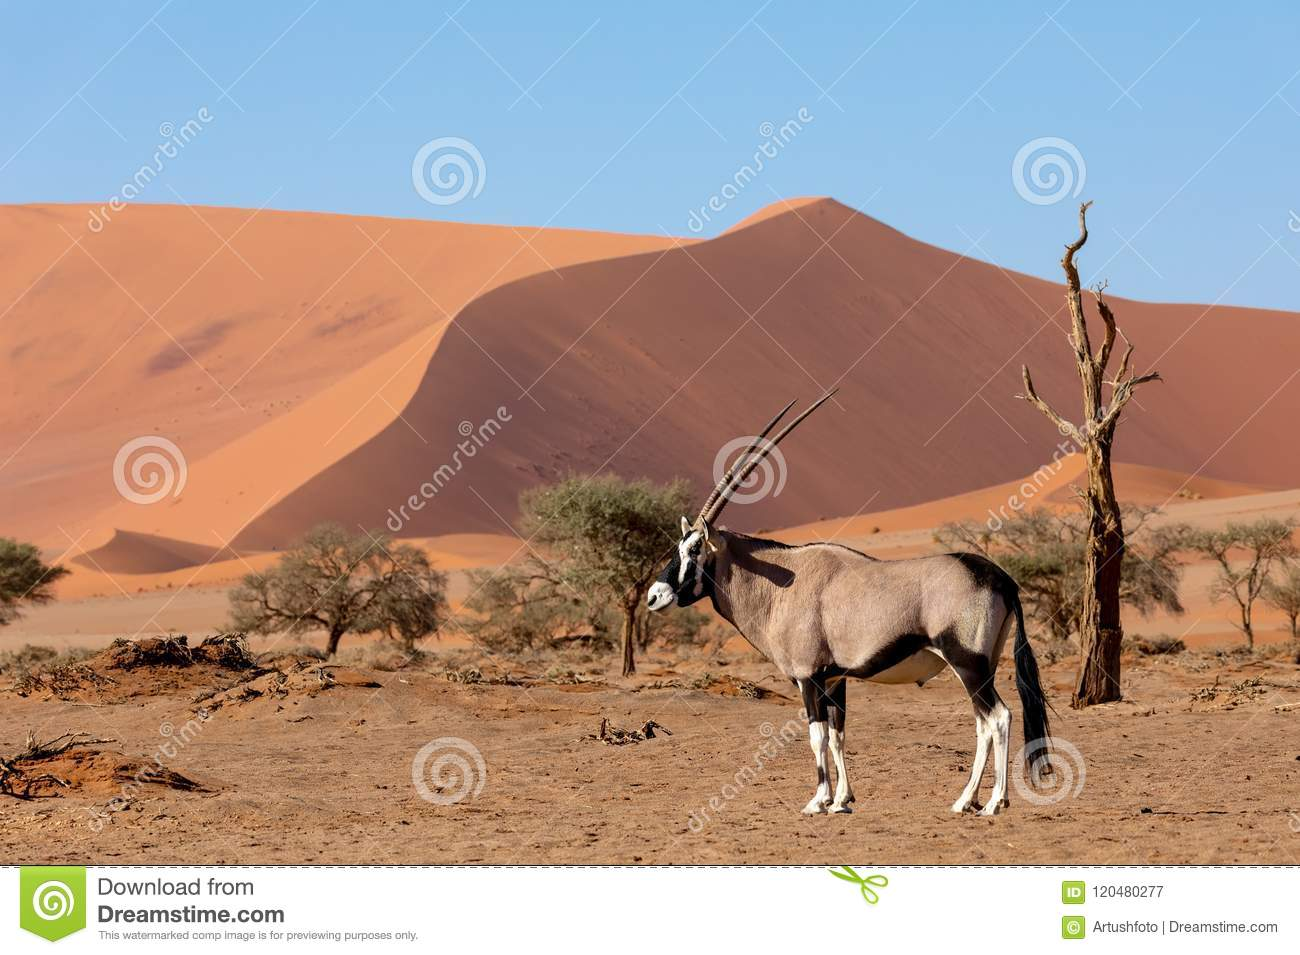 Gemsbok, Oryx gazella on dune, Namibia Wildlife